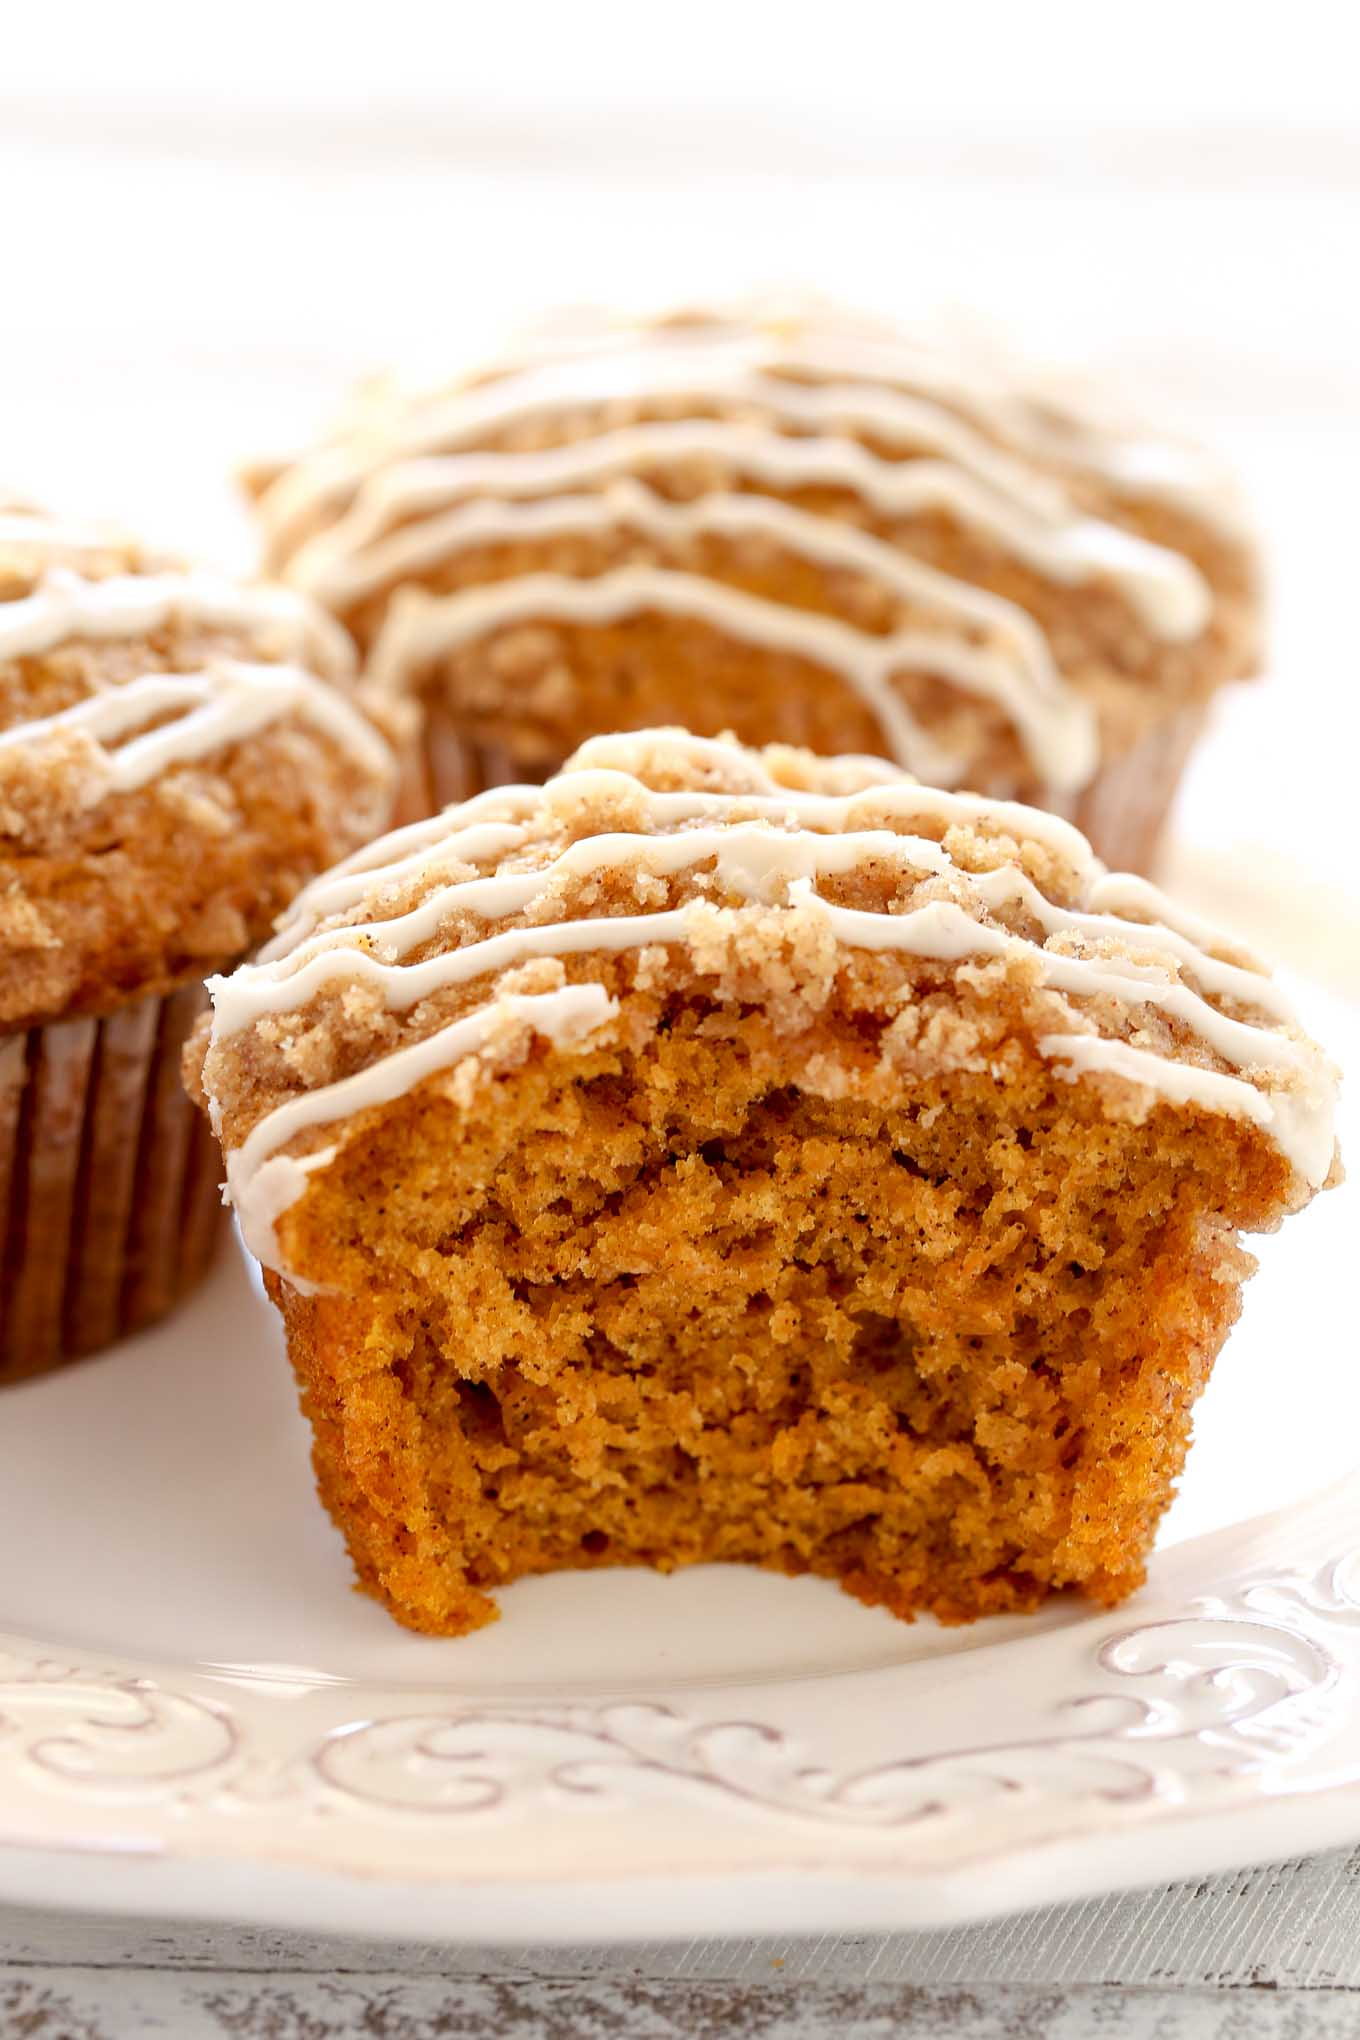 Close up view of pumpkin muffins on a white plate. The front muffin has a bite missing.